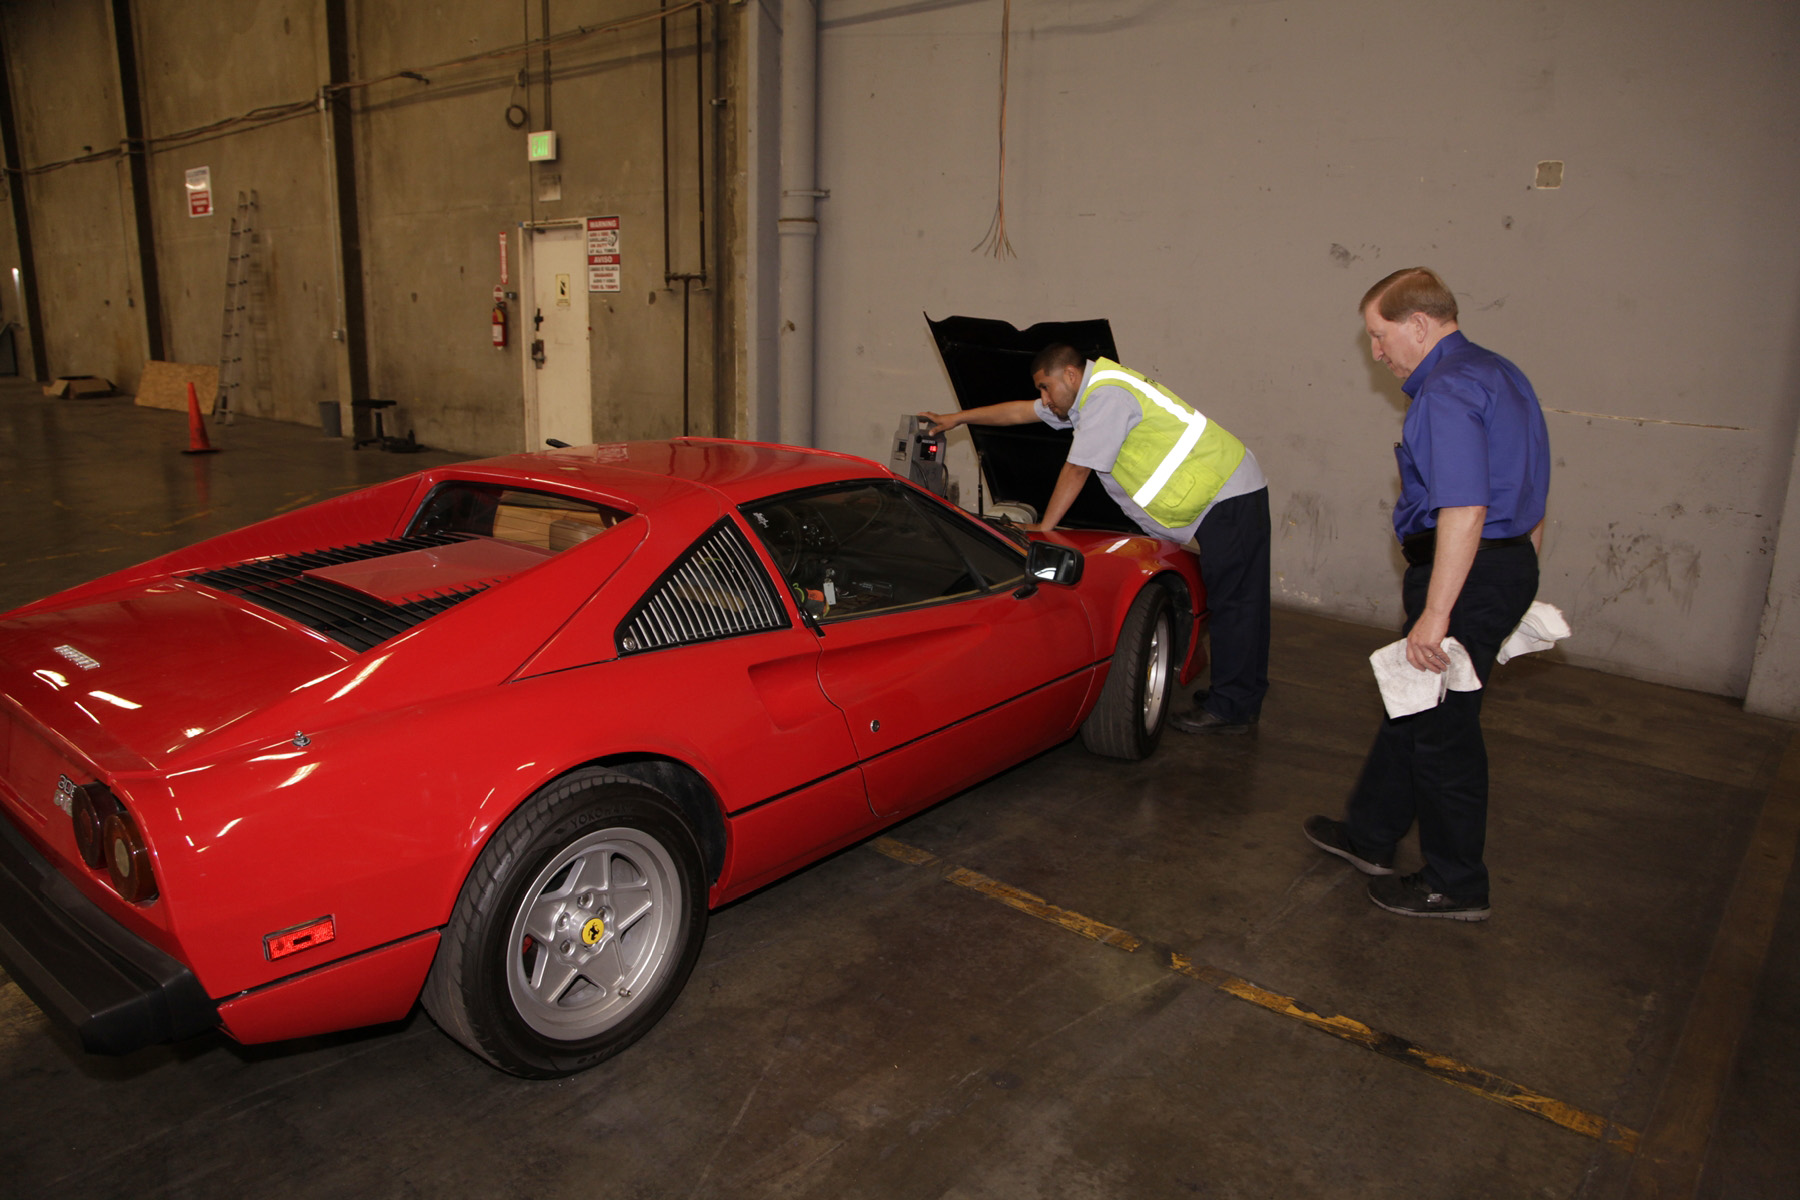 NICB Special Agent Lou Koven (right) looks over the stolen 1981 Ferrari.